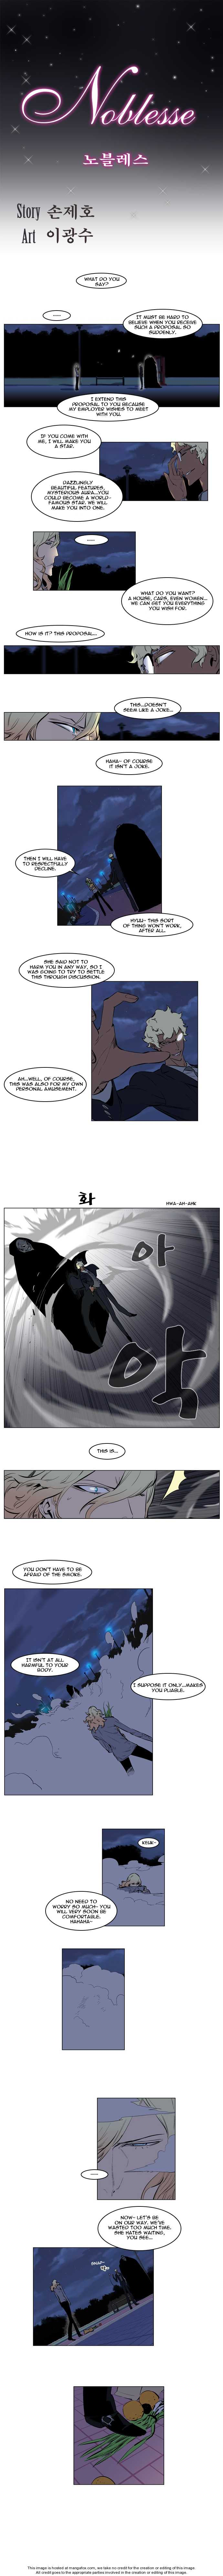 Noblesse 143 Page 1